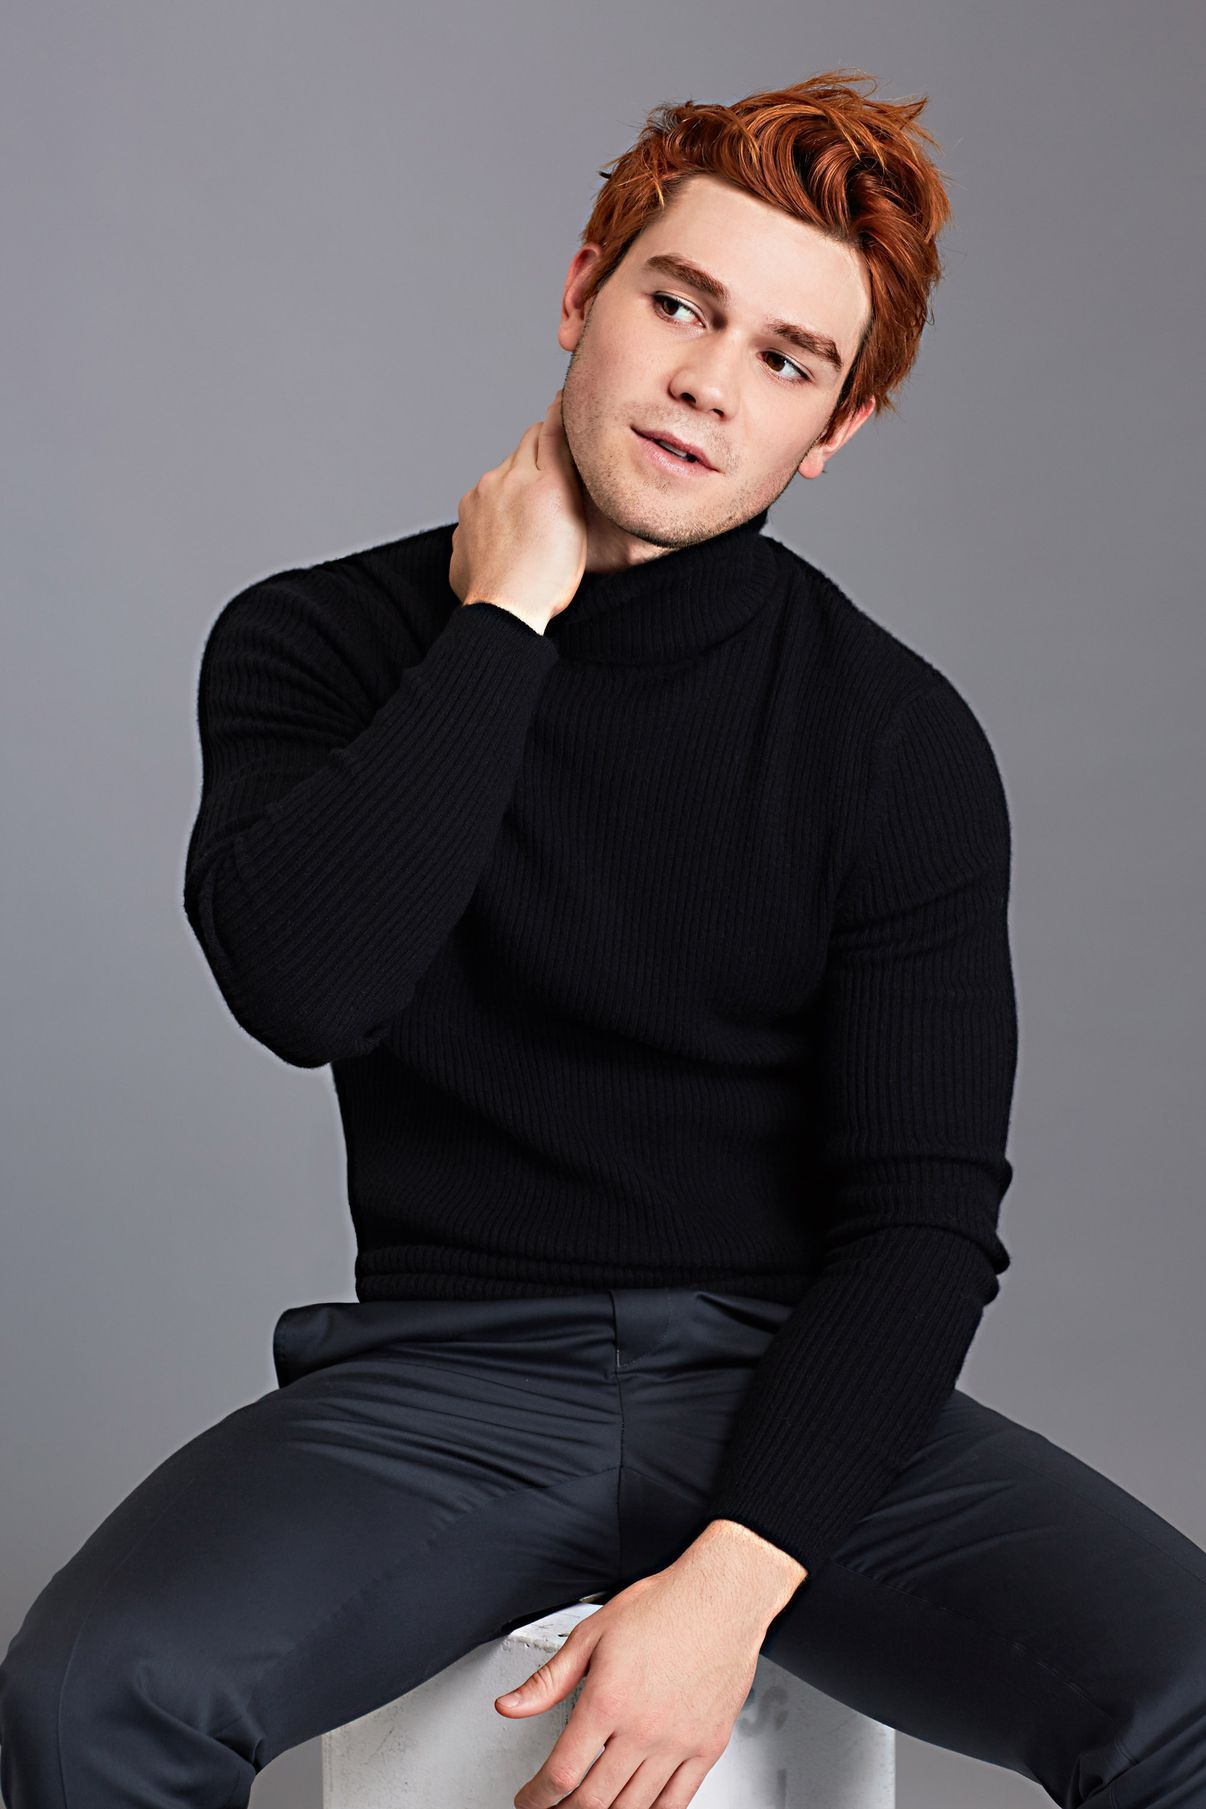 'Riverdale' Star KJ Apa Balances Relaxation and Refinement Riverdale Star KJ Apa Balances Relaxation and Refinement